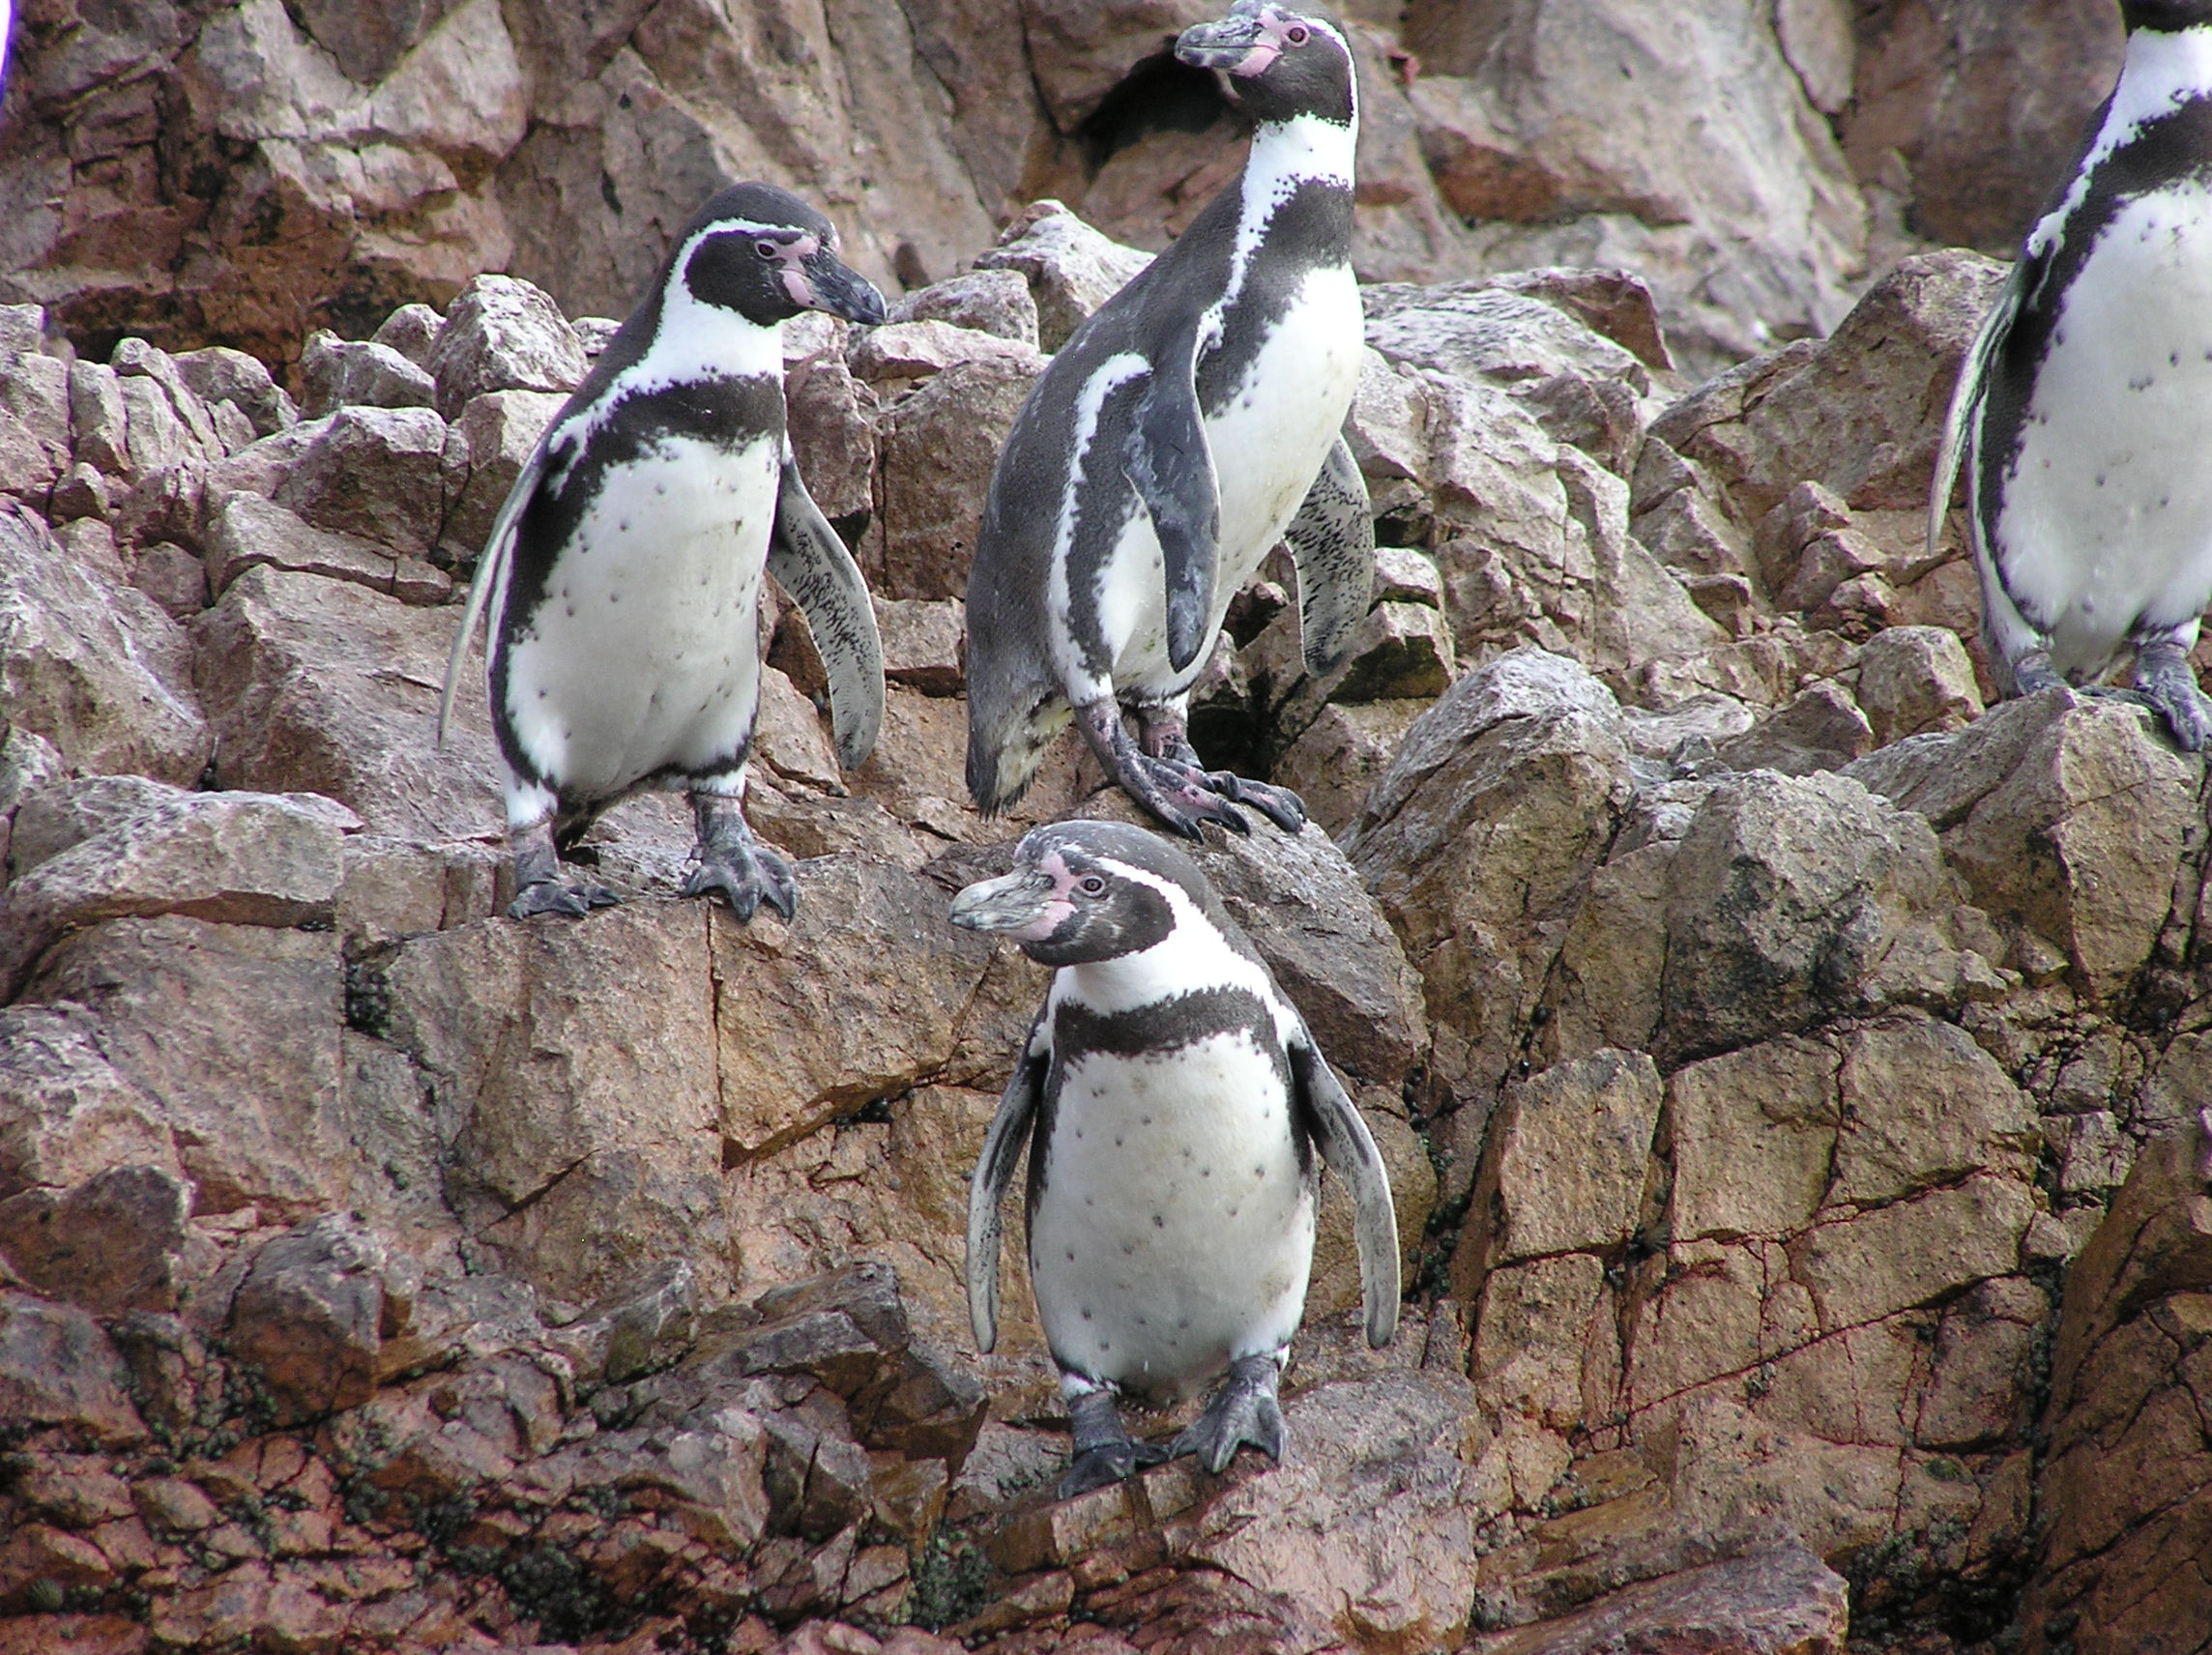 Humboldt Penguins off the coast of Peru (Jeff Marks photo)